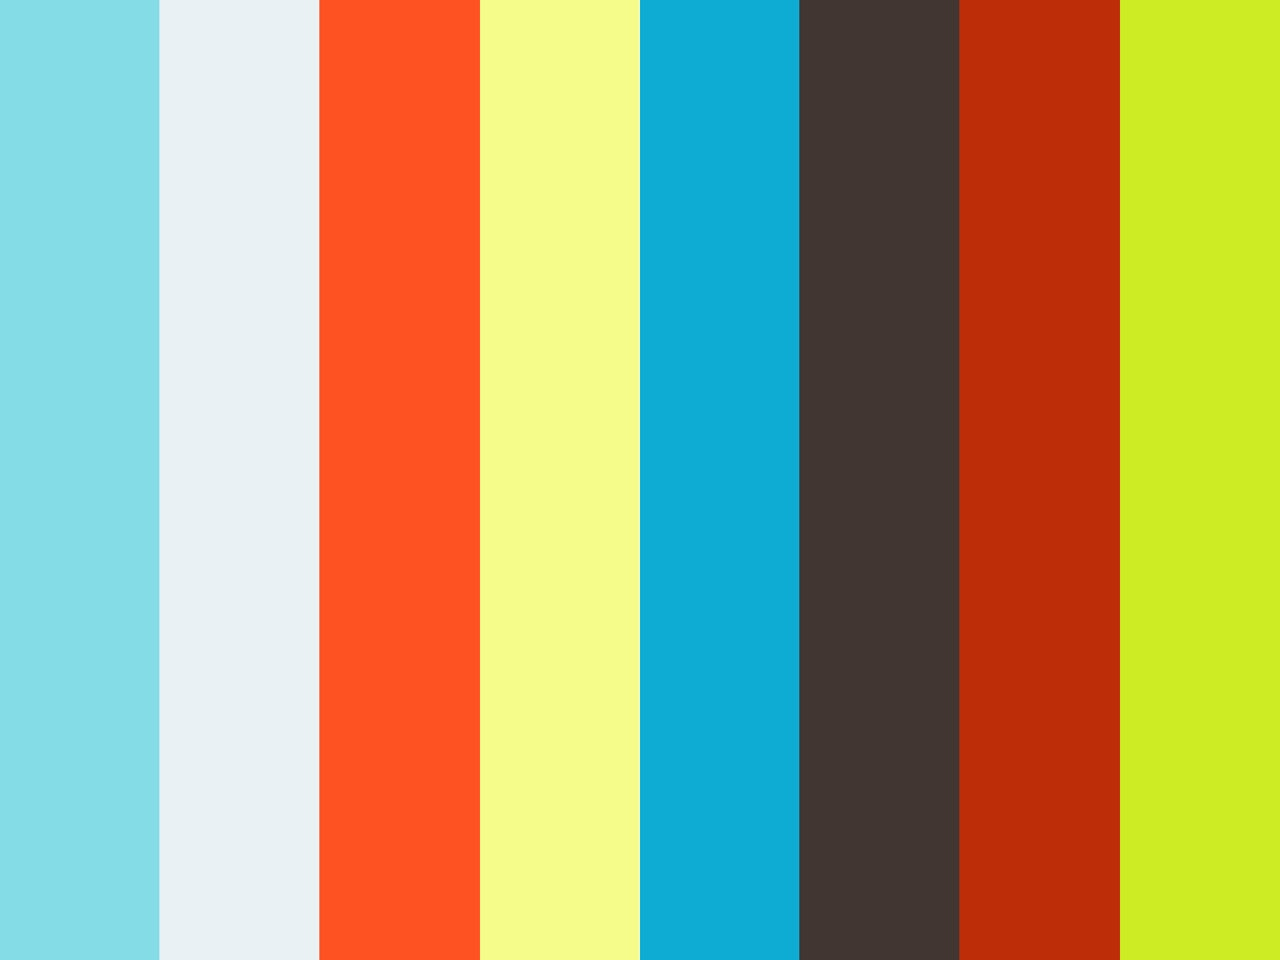 First ride in a Tuktuk